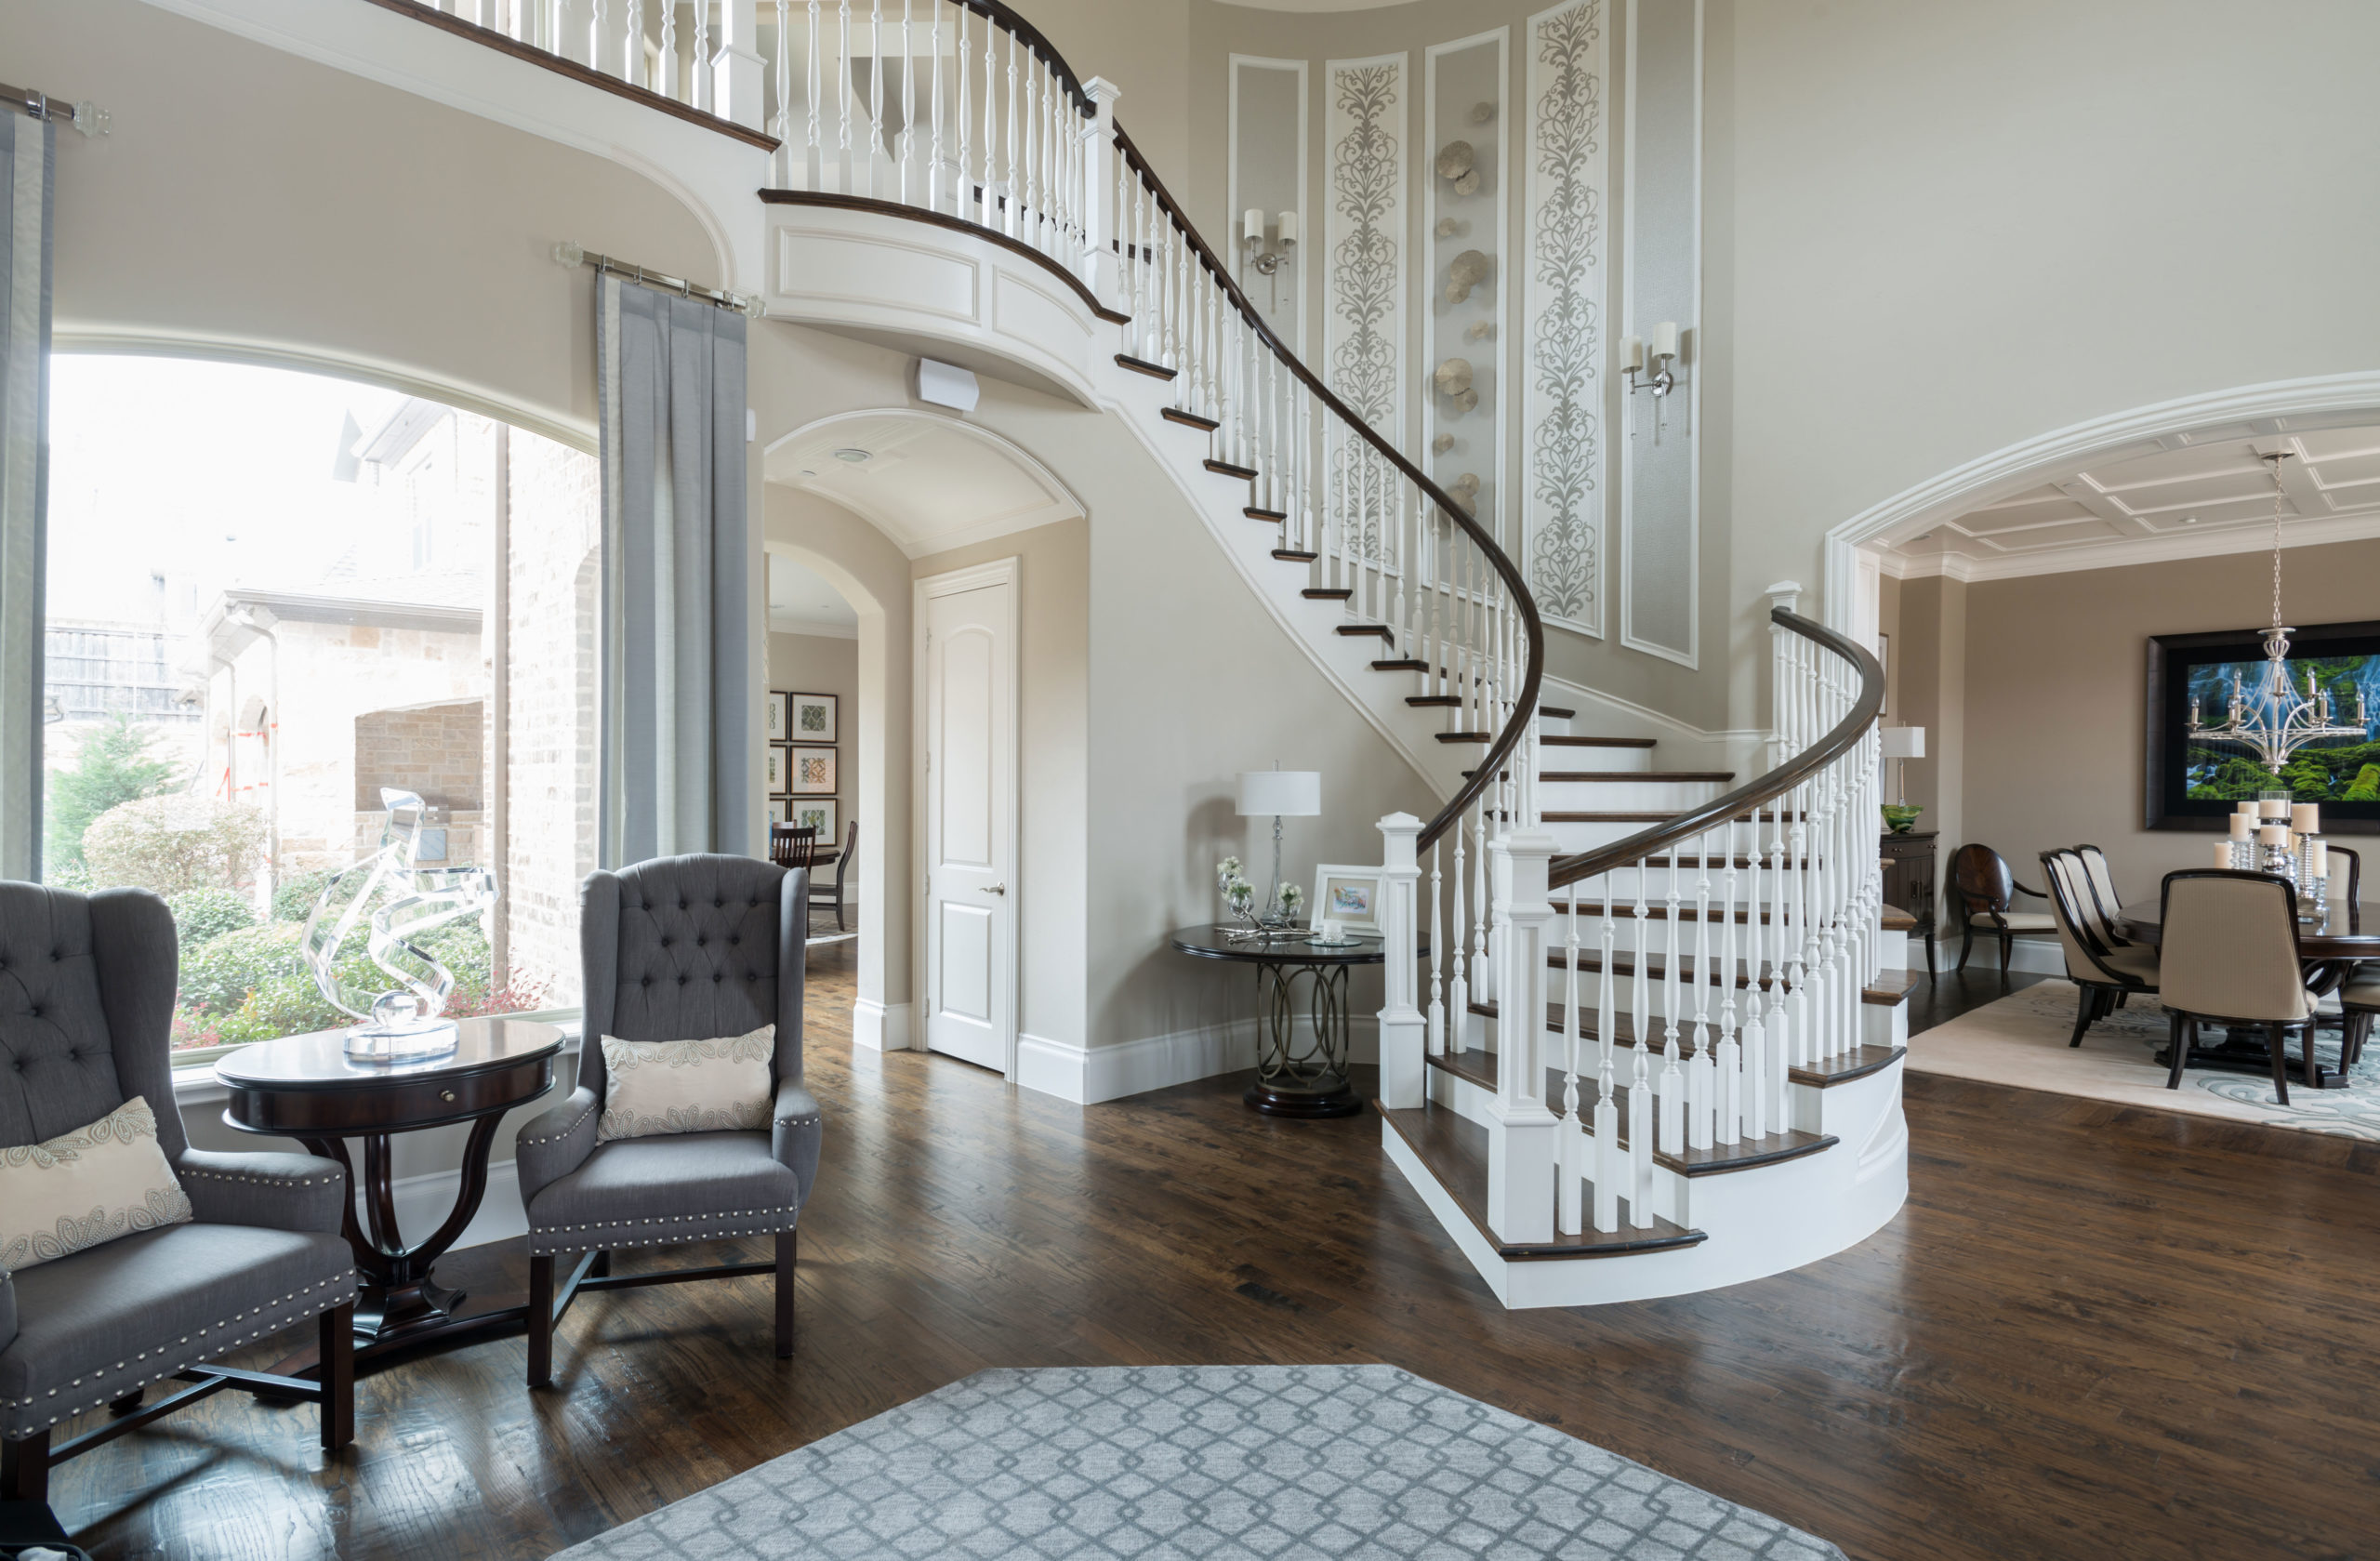 Calm Serenity 1 | Award-Winning Interior Designers, Interior Decorators, Kitchen Designers, Bath Designers, Home Renovations, Window Treatments, & Custom Furniture D'KOR HOME by Dee Frazier Interiors | Interior Designer Dallas TX